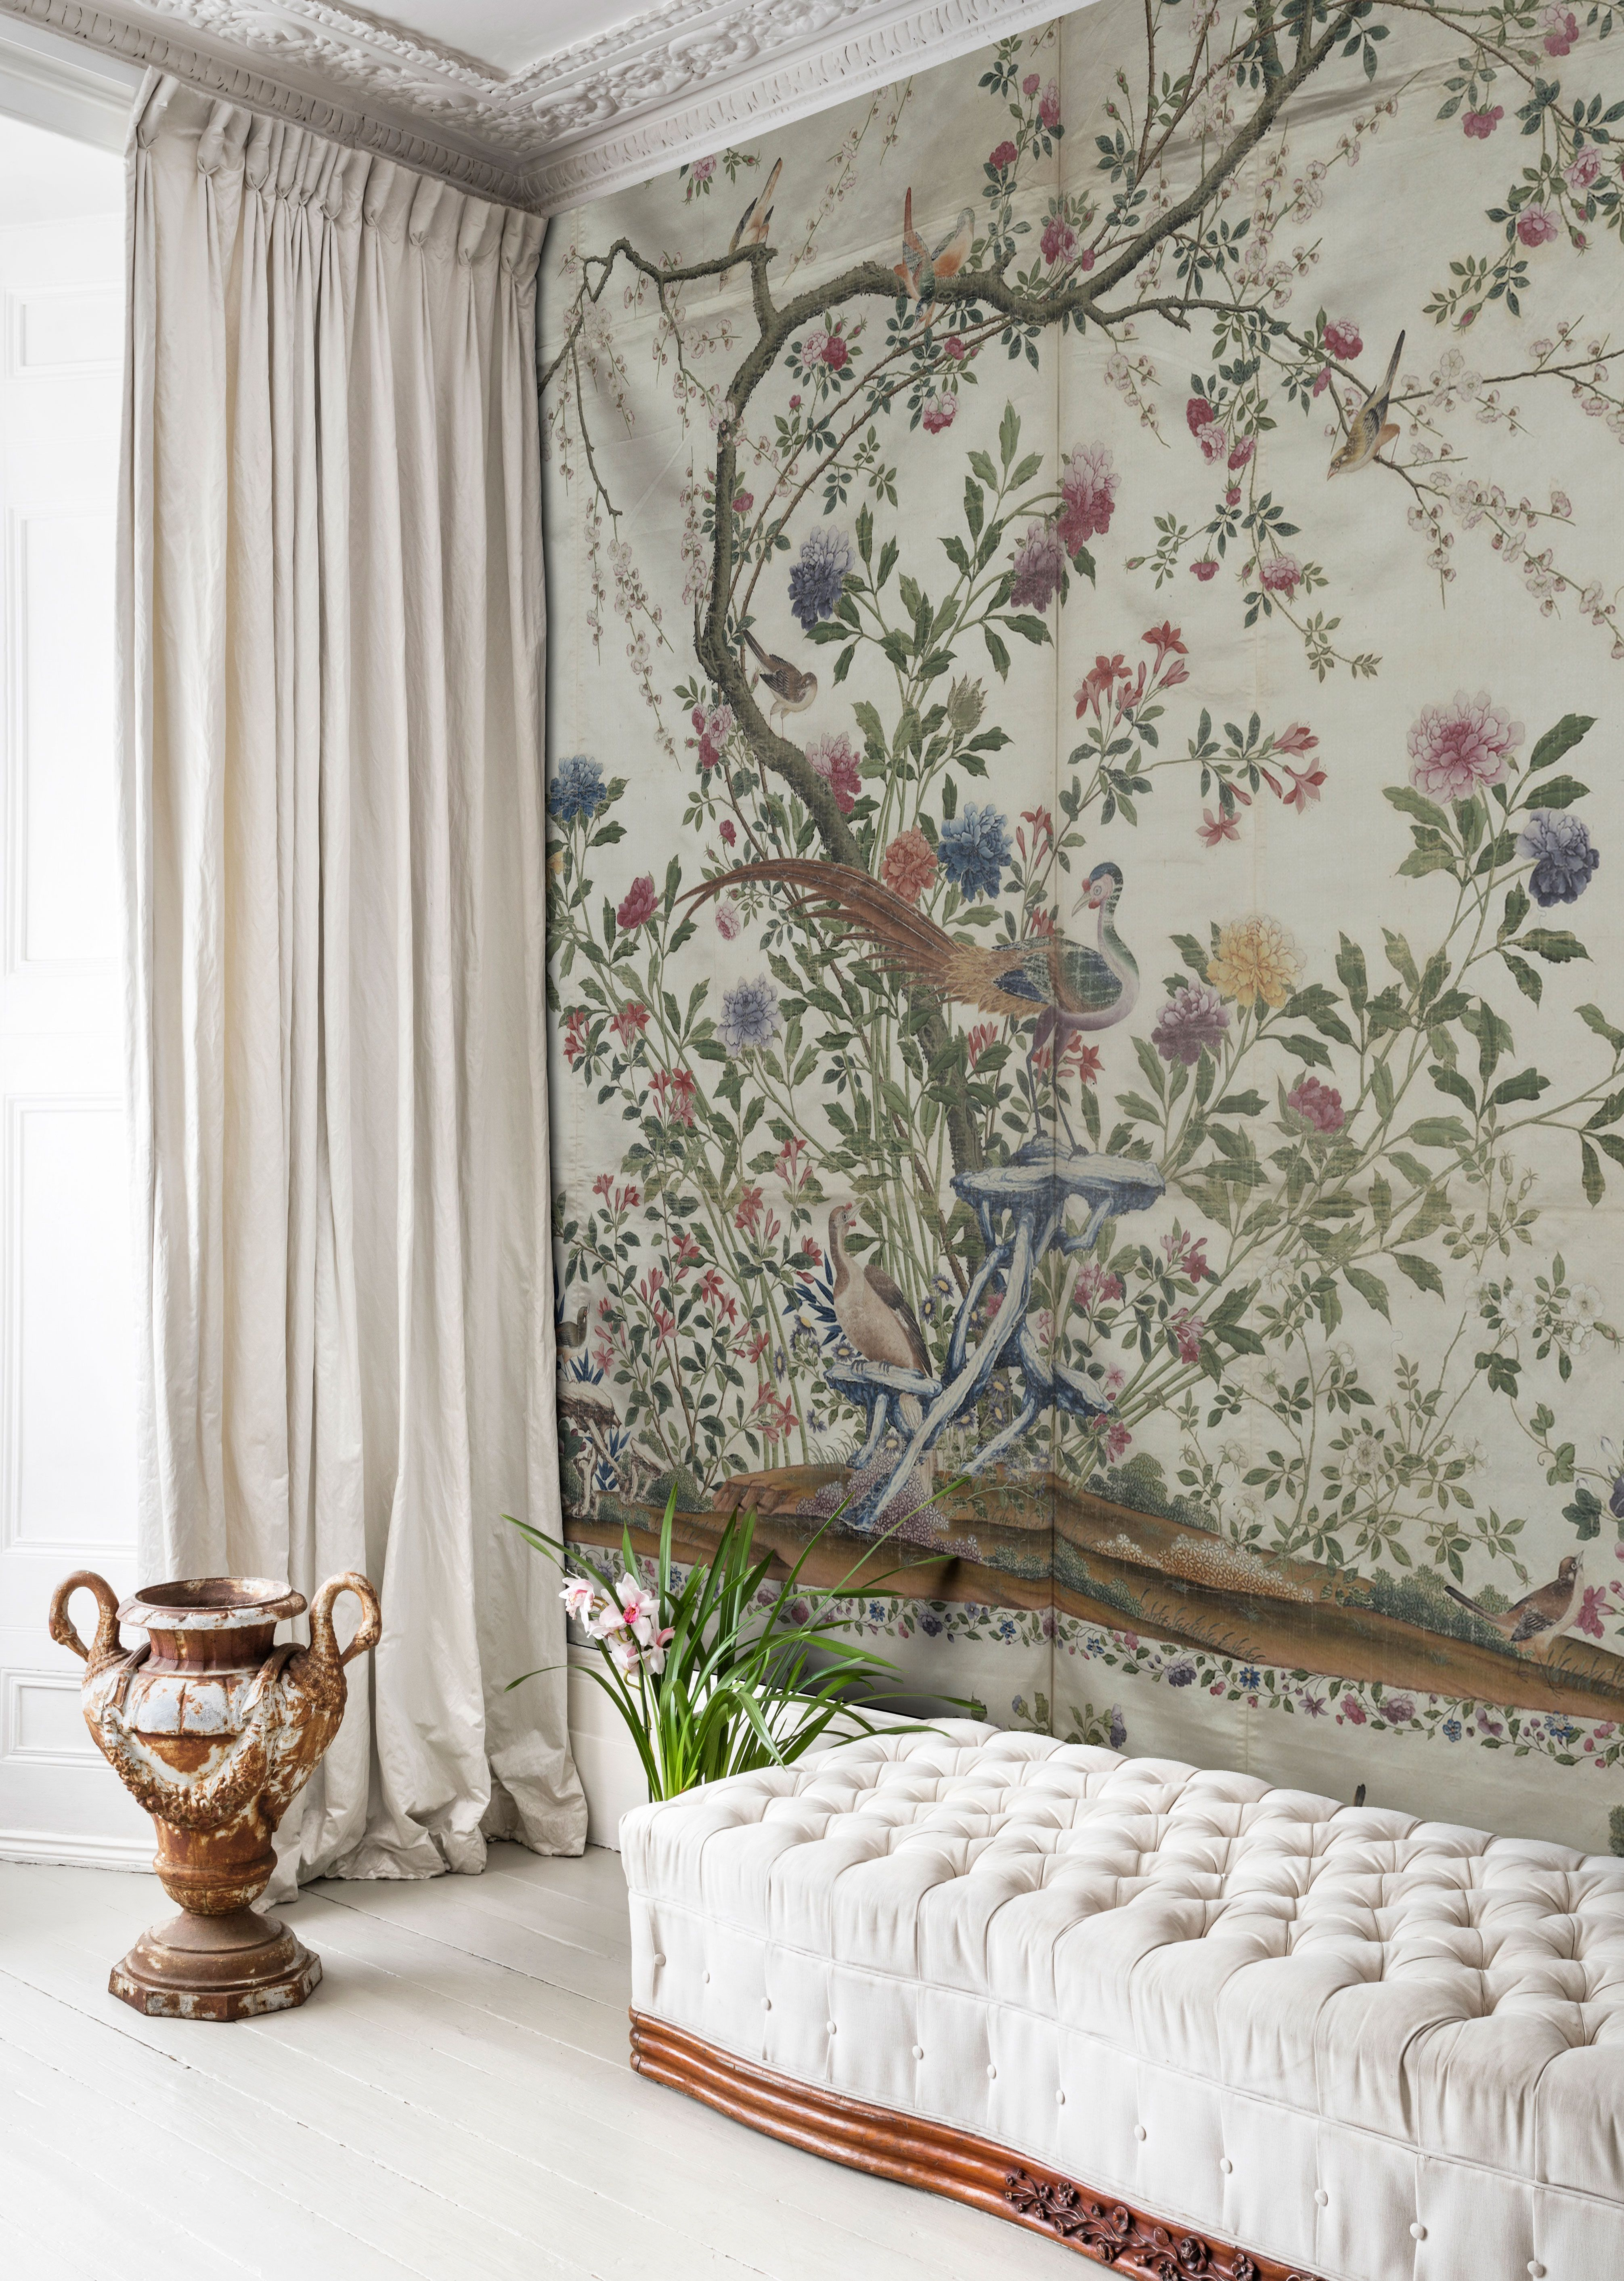 Browse Our Range Of Stunning 18th Century Chinoiserie Wallpaper